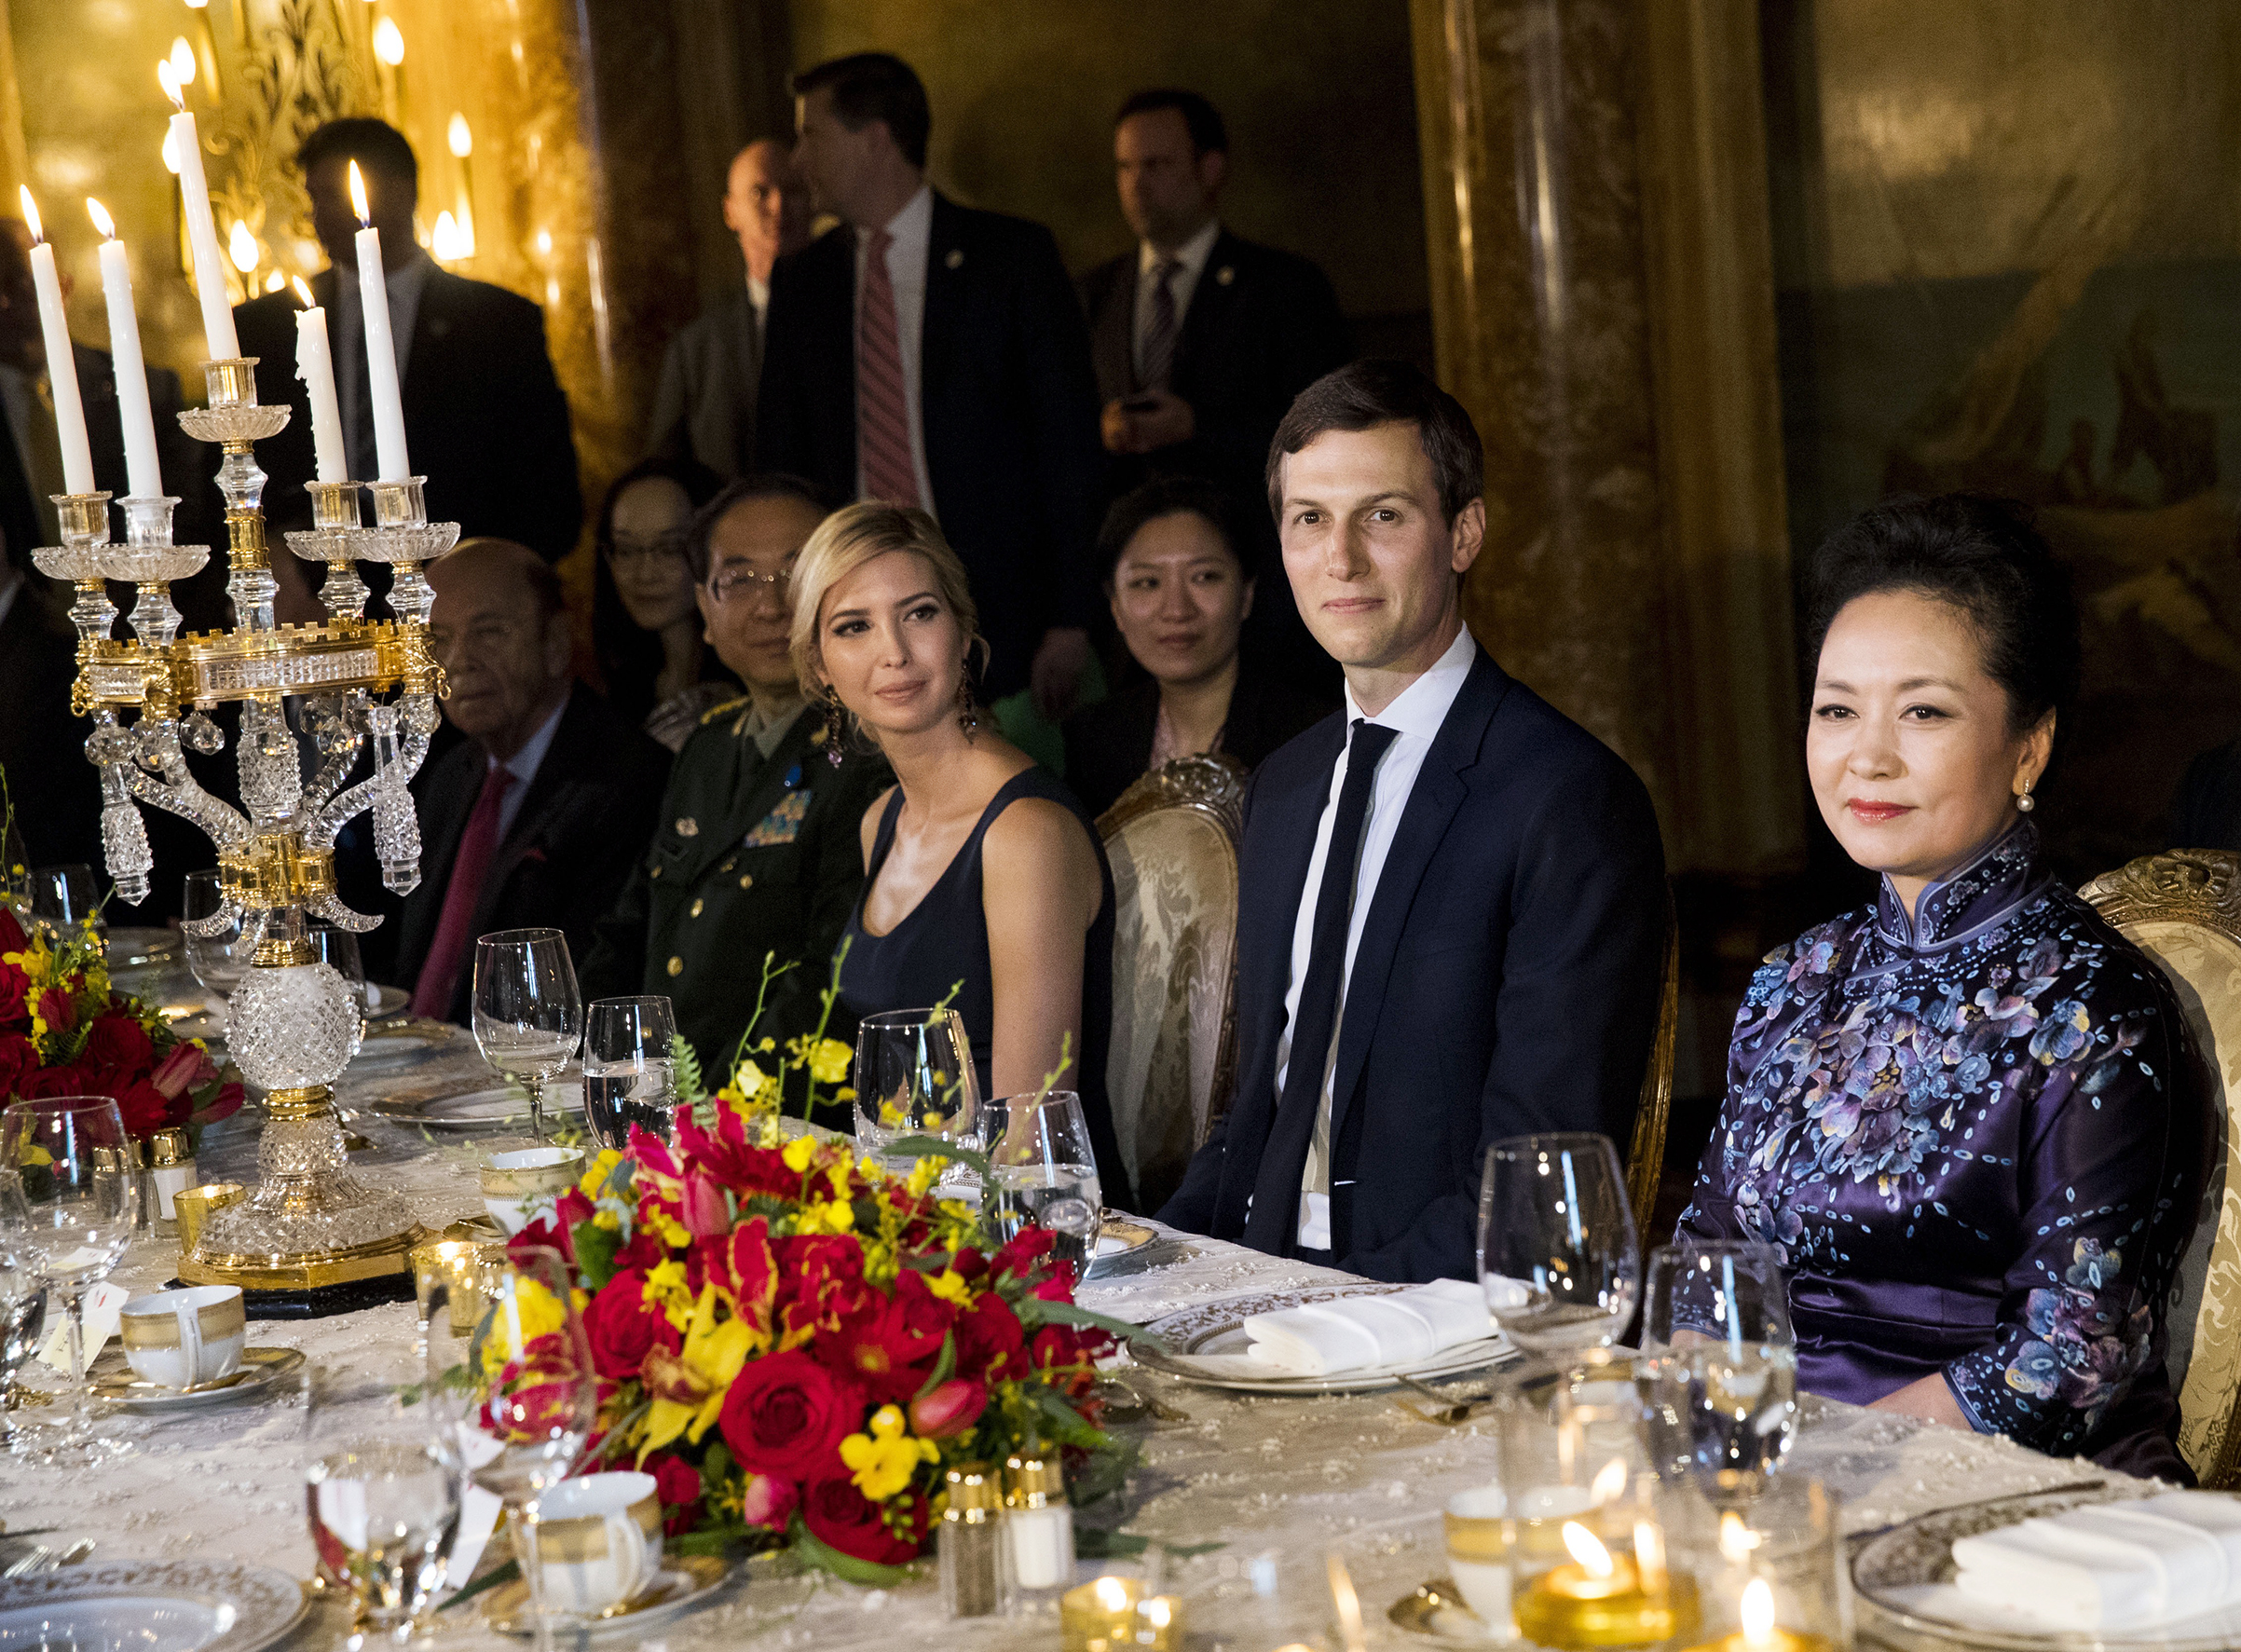 Ivanka Trump and Jared Kushner attend a state dinner with President Xi Jinping of China and his wife at the Mar-a-Lago resort in Palm Beach, Fla., April 6, 2017.